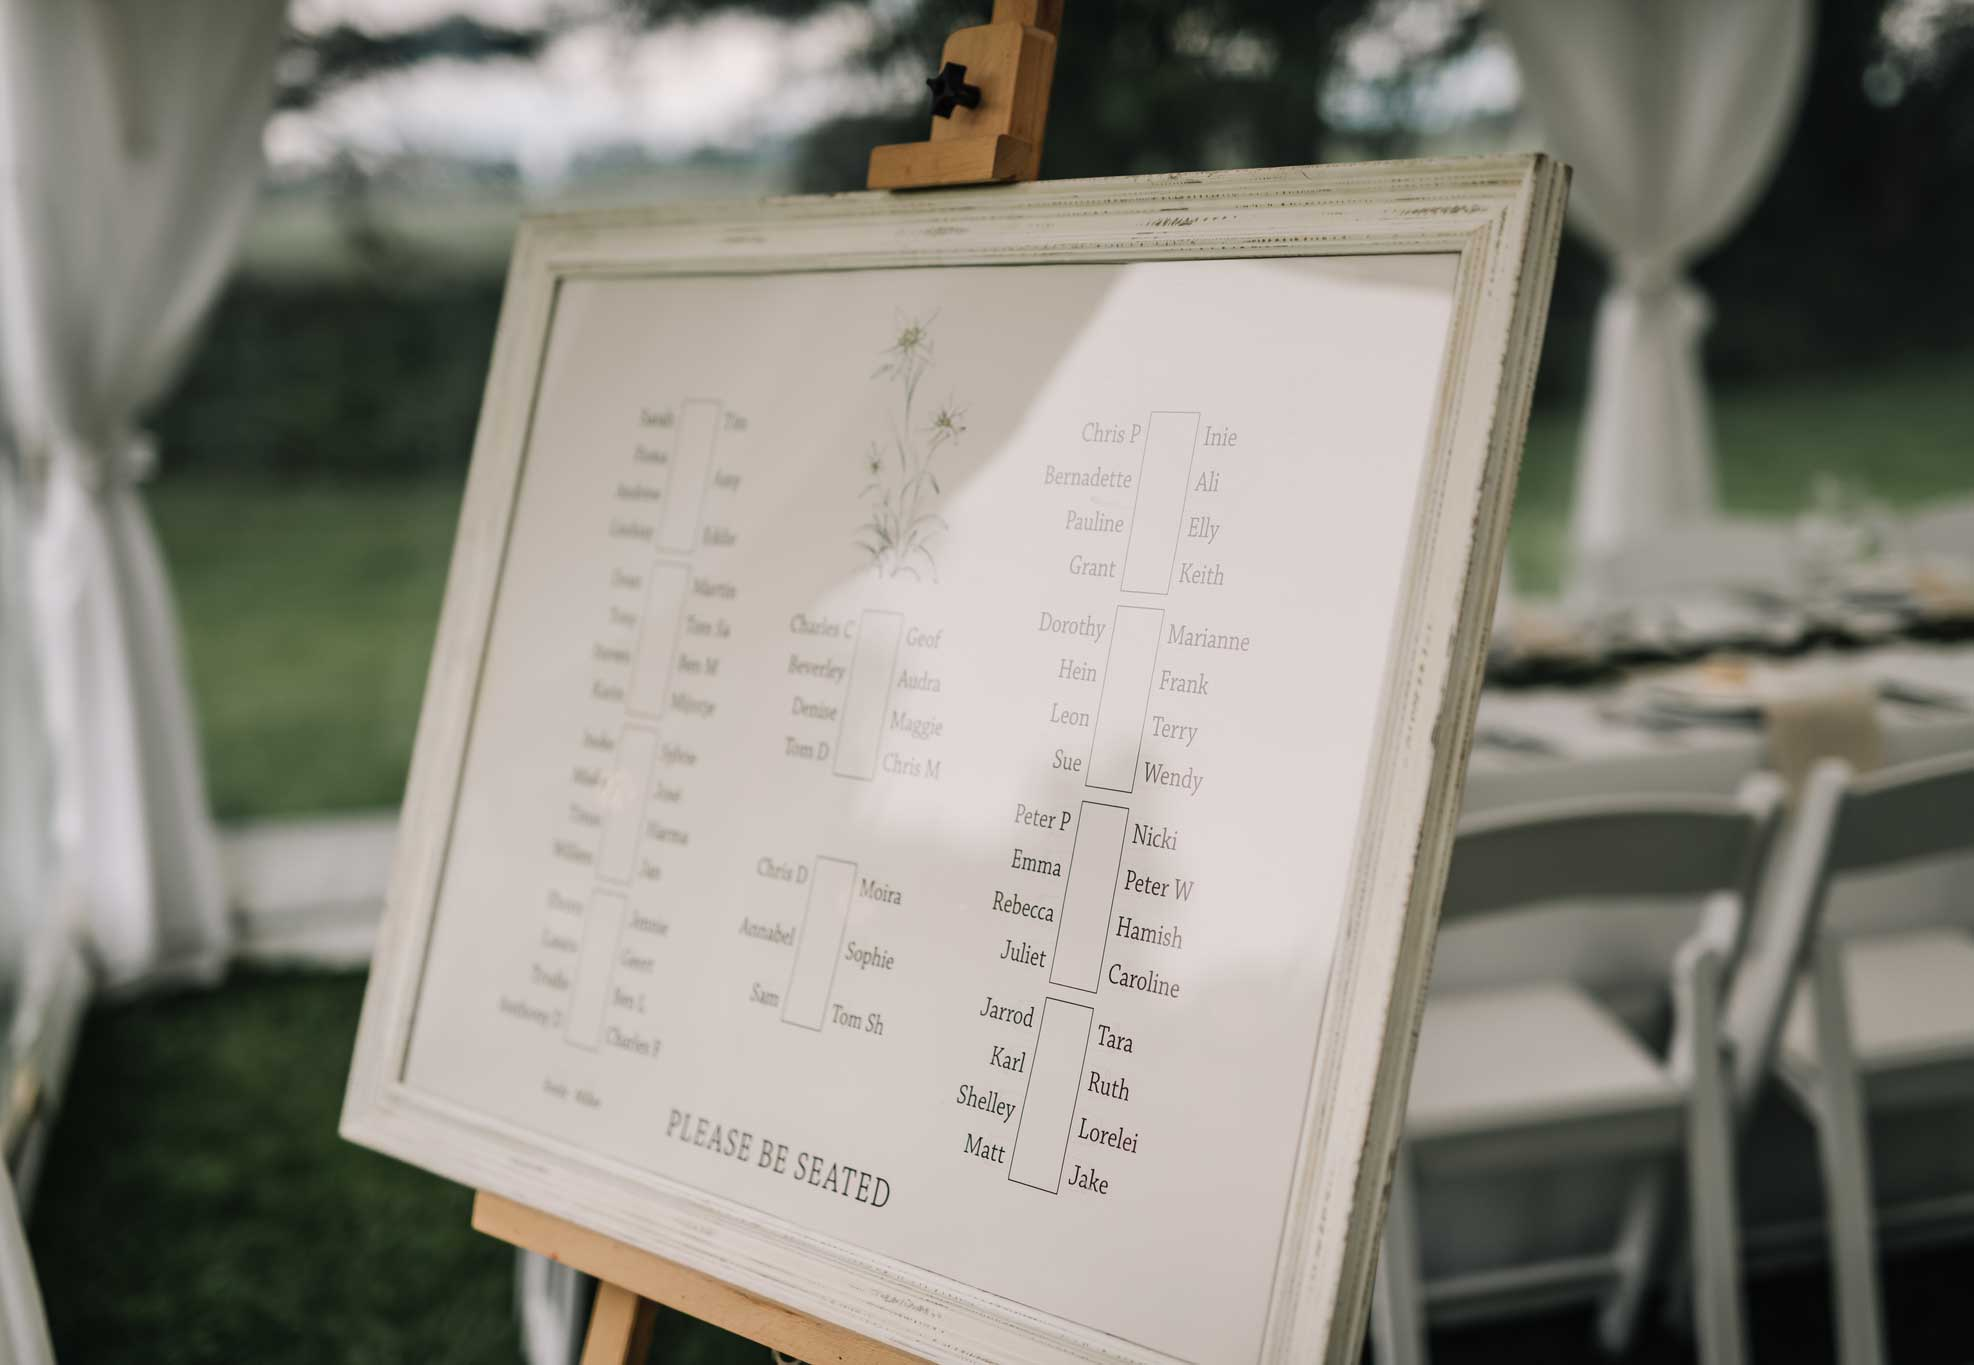 silk-estate-marquee-weddings-and-events-styling-and-hire-decor-signs-1